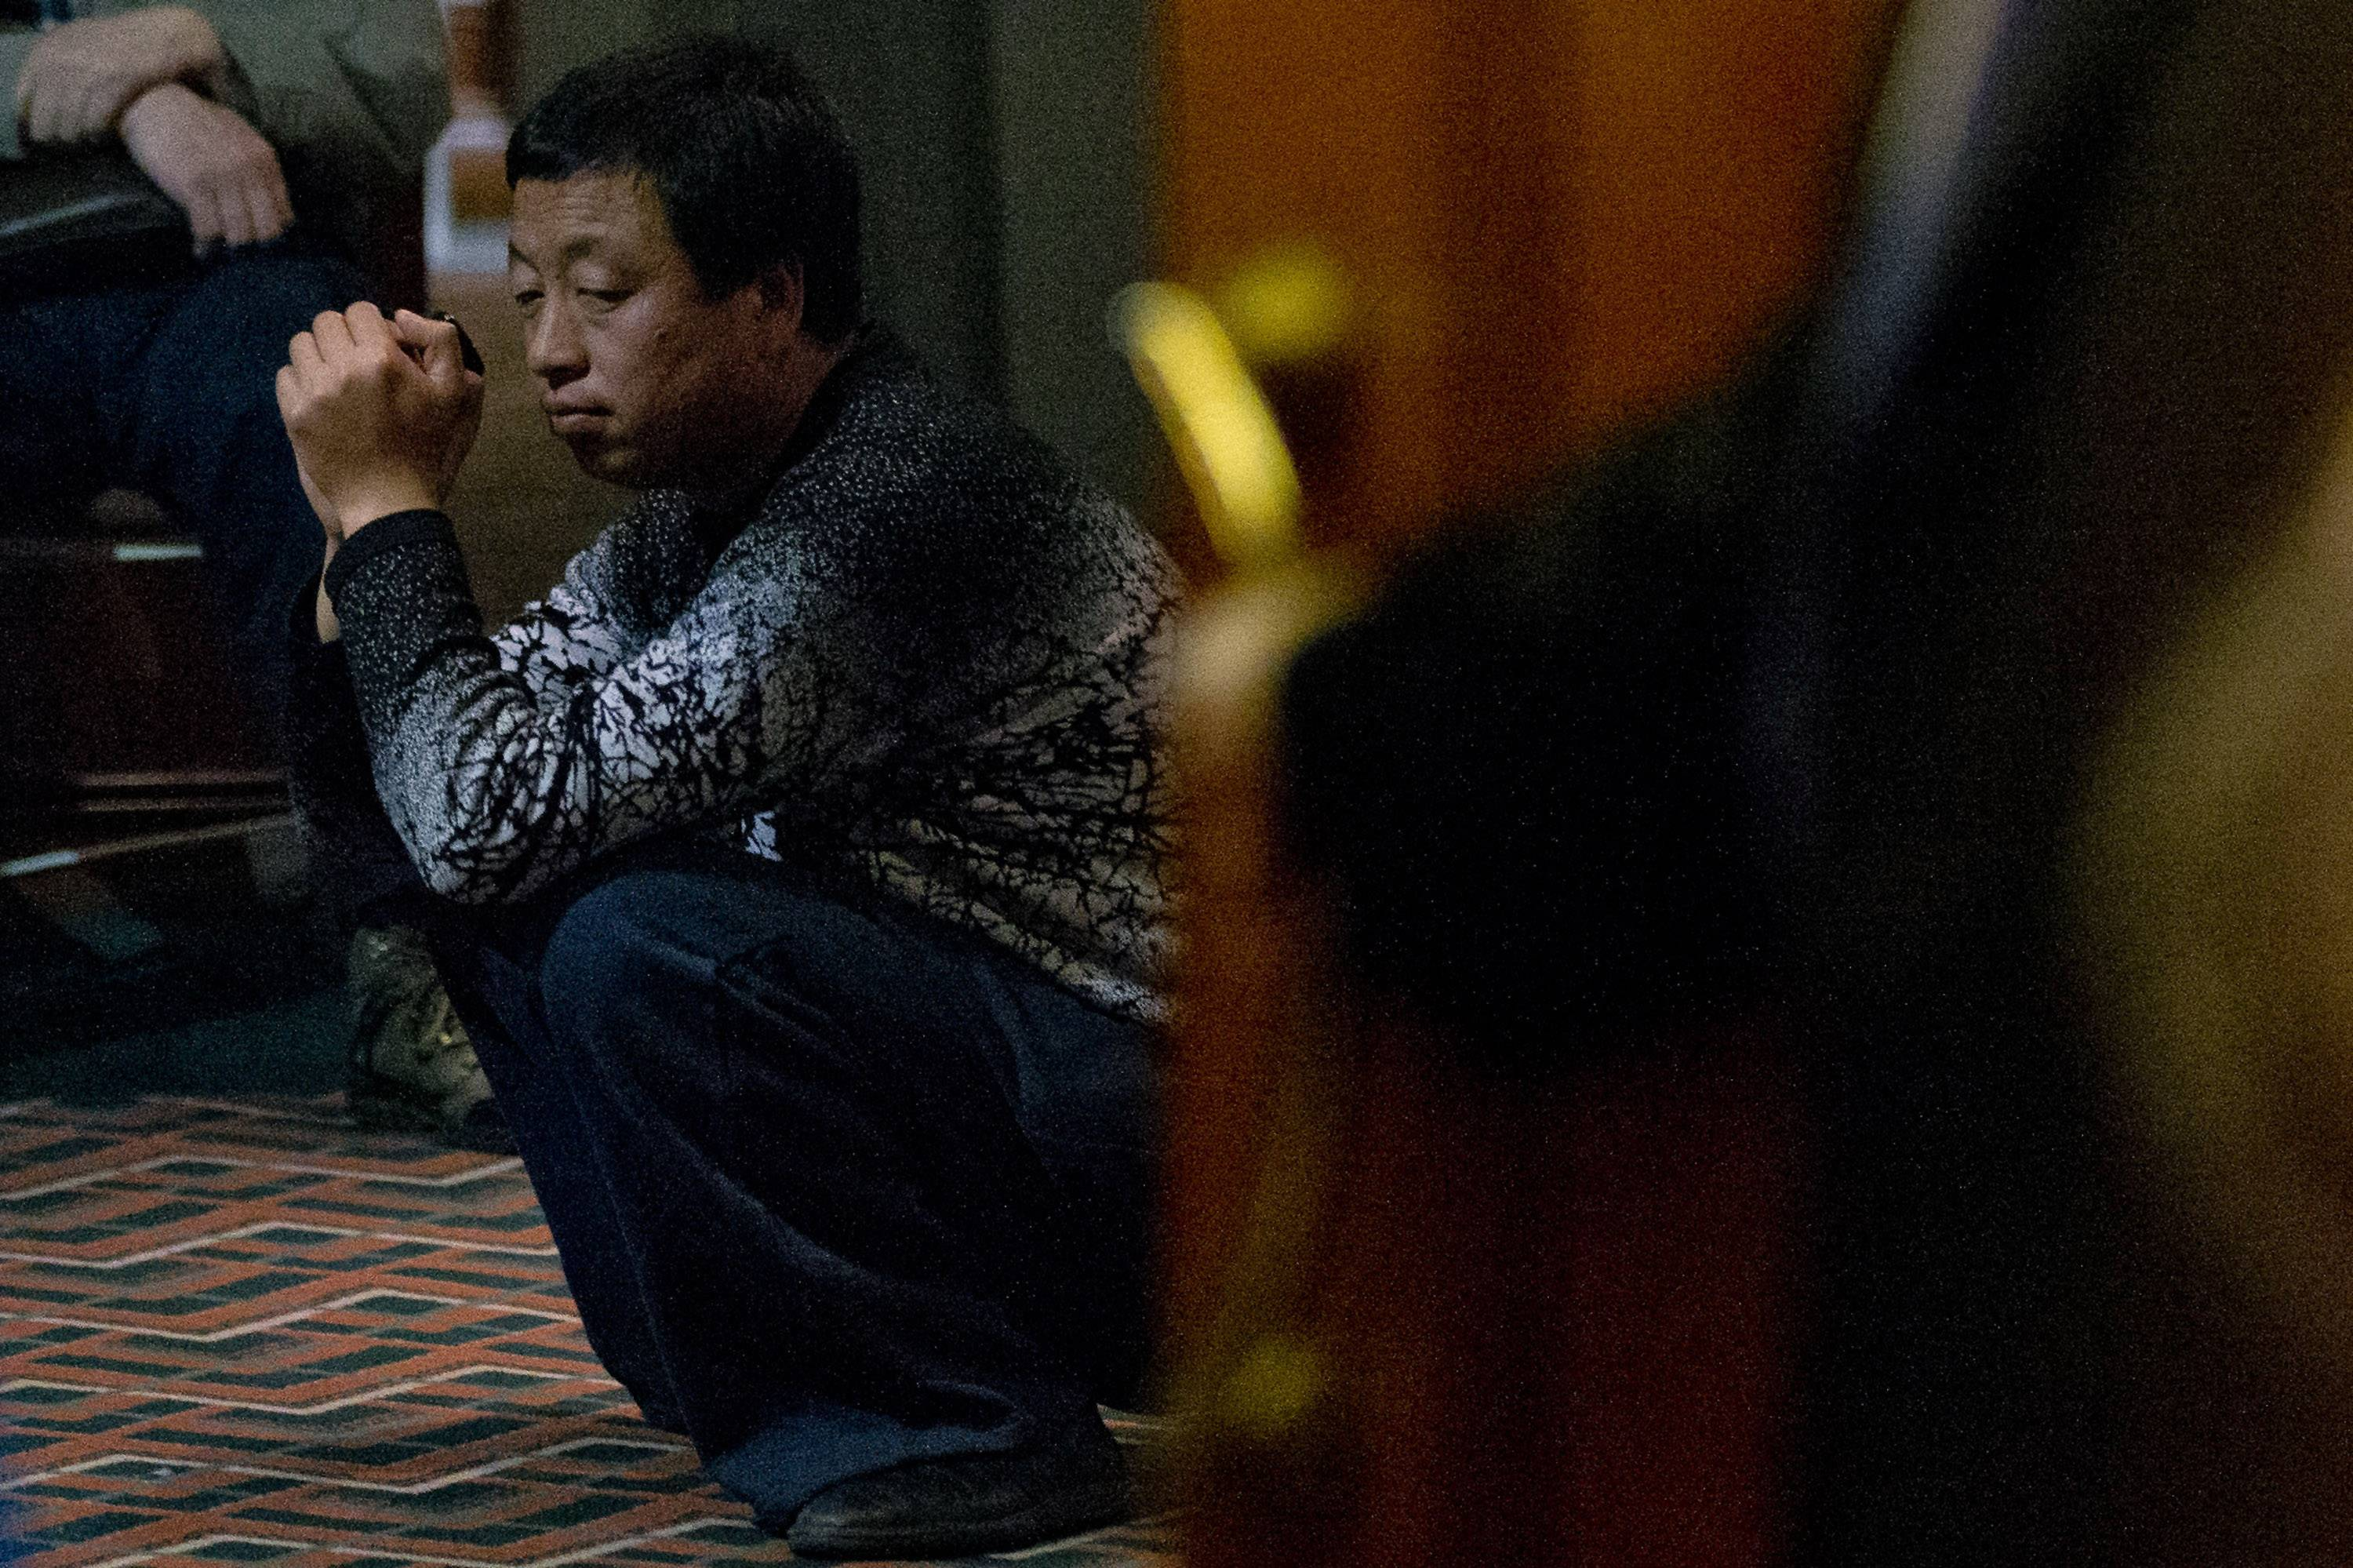 One of the relatives of Chinese passengers aboard missing Malaysia Airlines Flight MH370 waits to attend a briefing meeting with Malaysian officials in a hotel ballroom in Beijing, China, Friday, March 21, 2014.